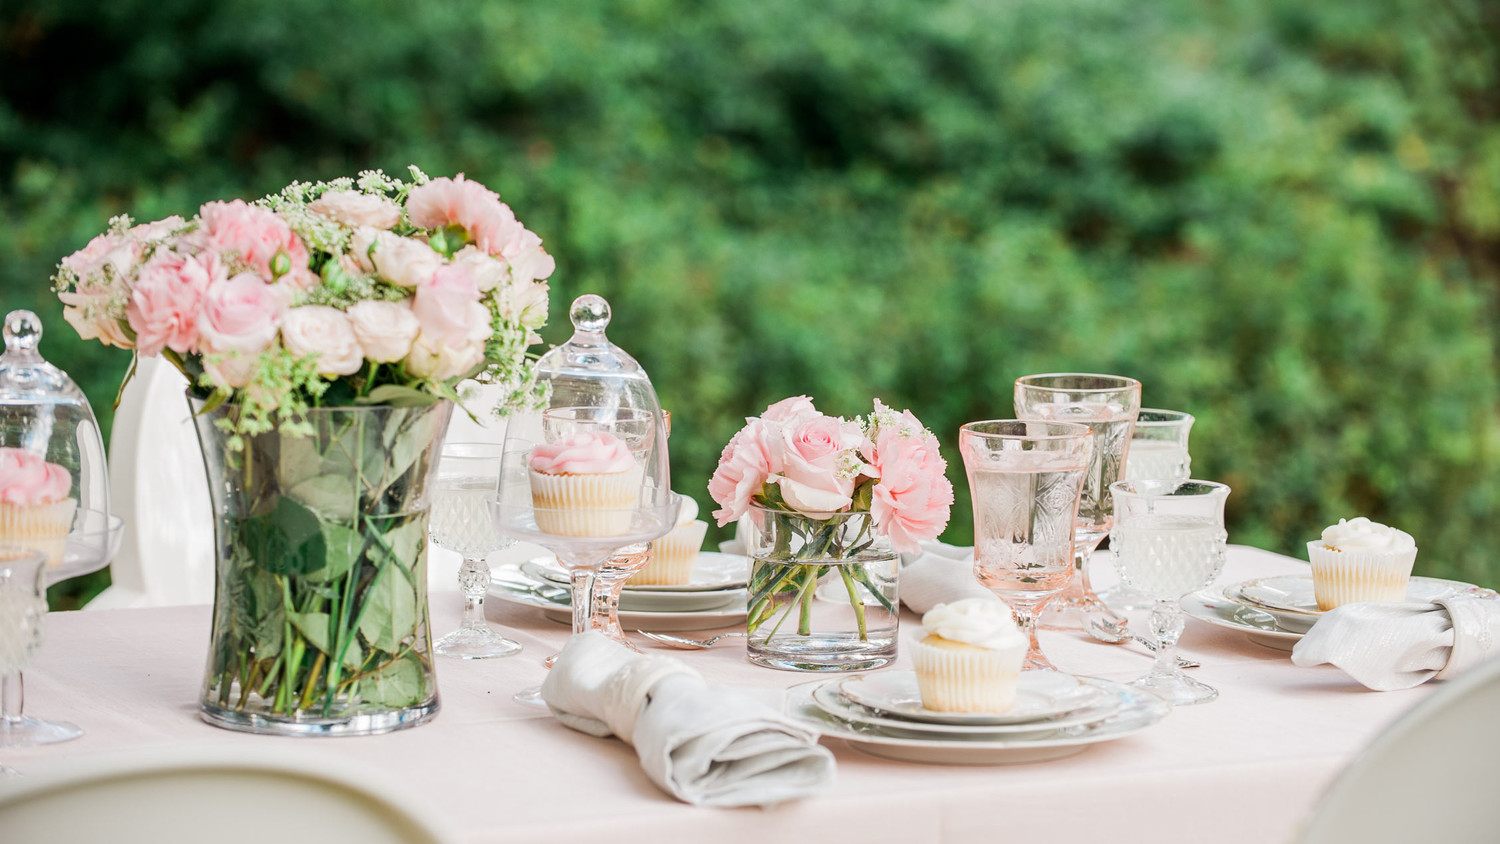 Martha Stewart Weddings: How To Throw The Prettiest Spring Bridal Shower